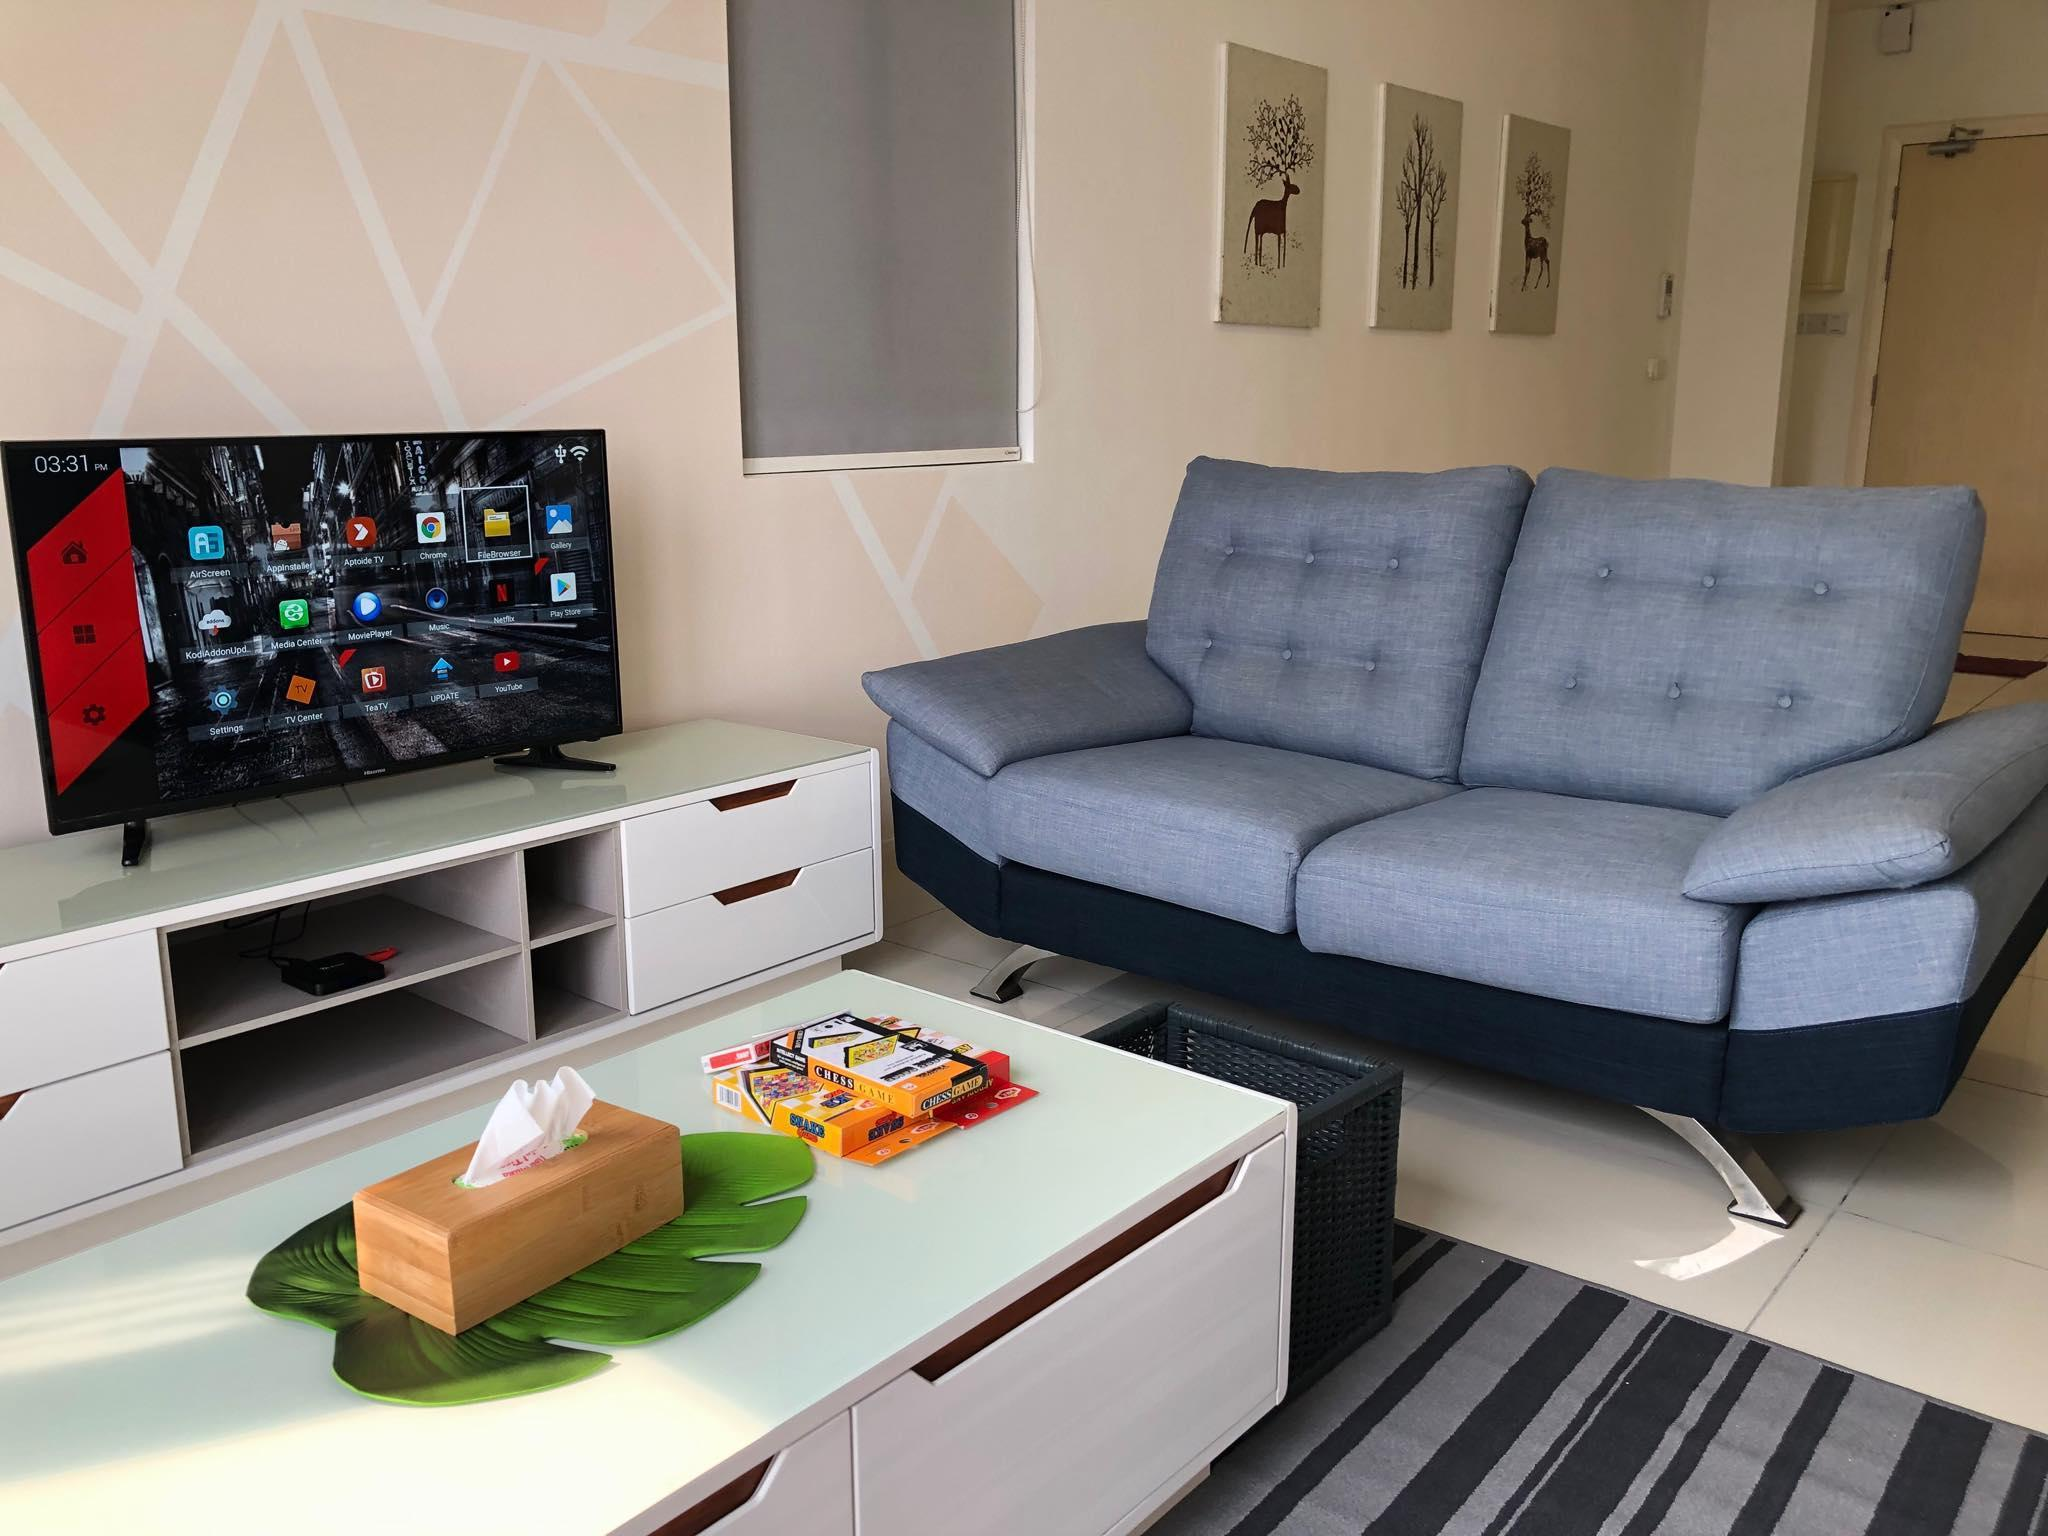 PROMOTION The HOME 100Mbps WiFi 20m To KLCC